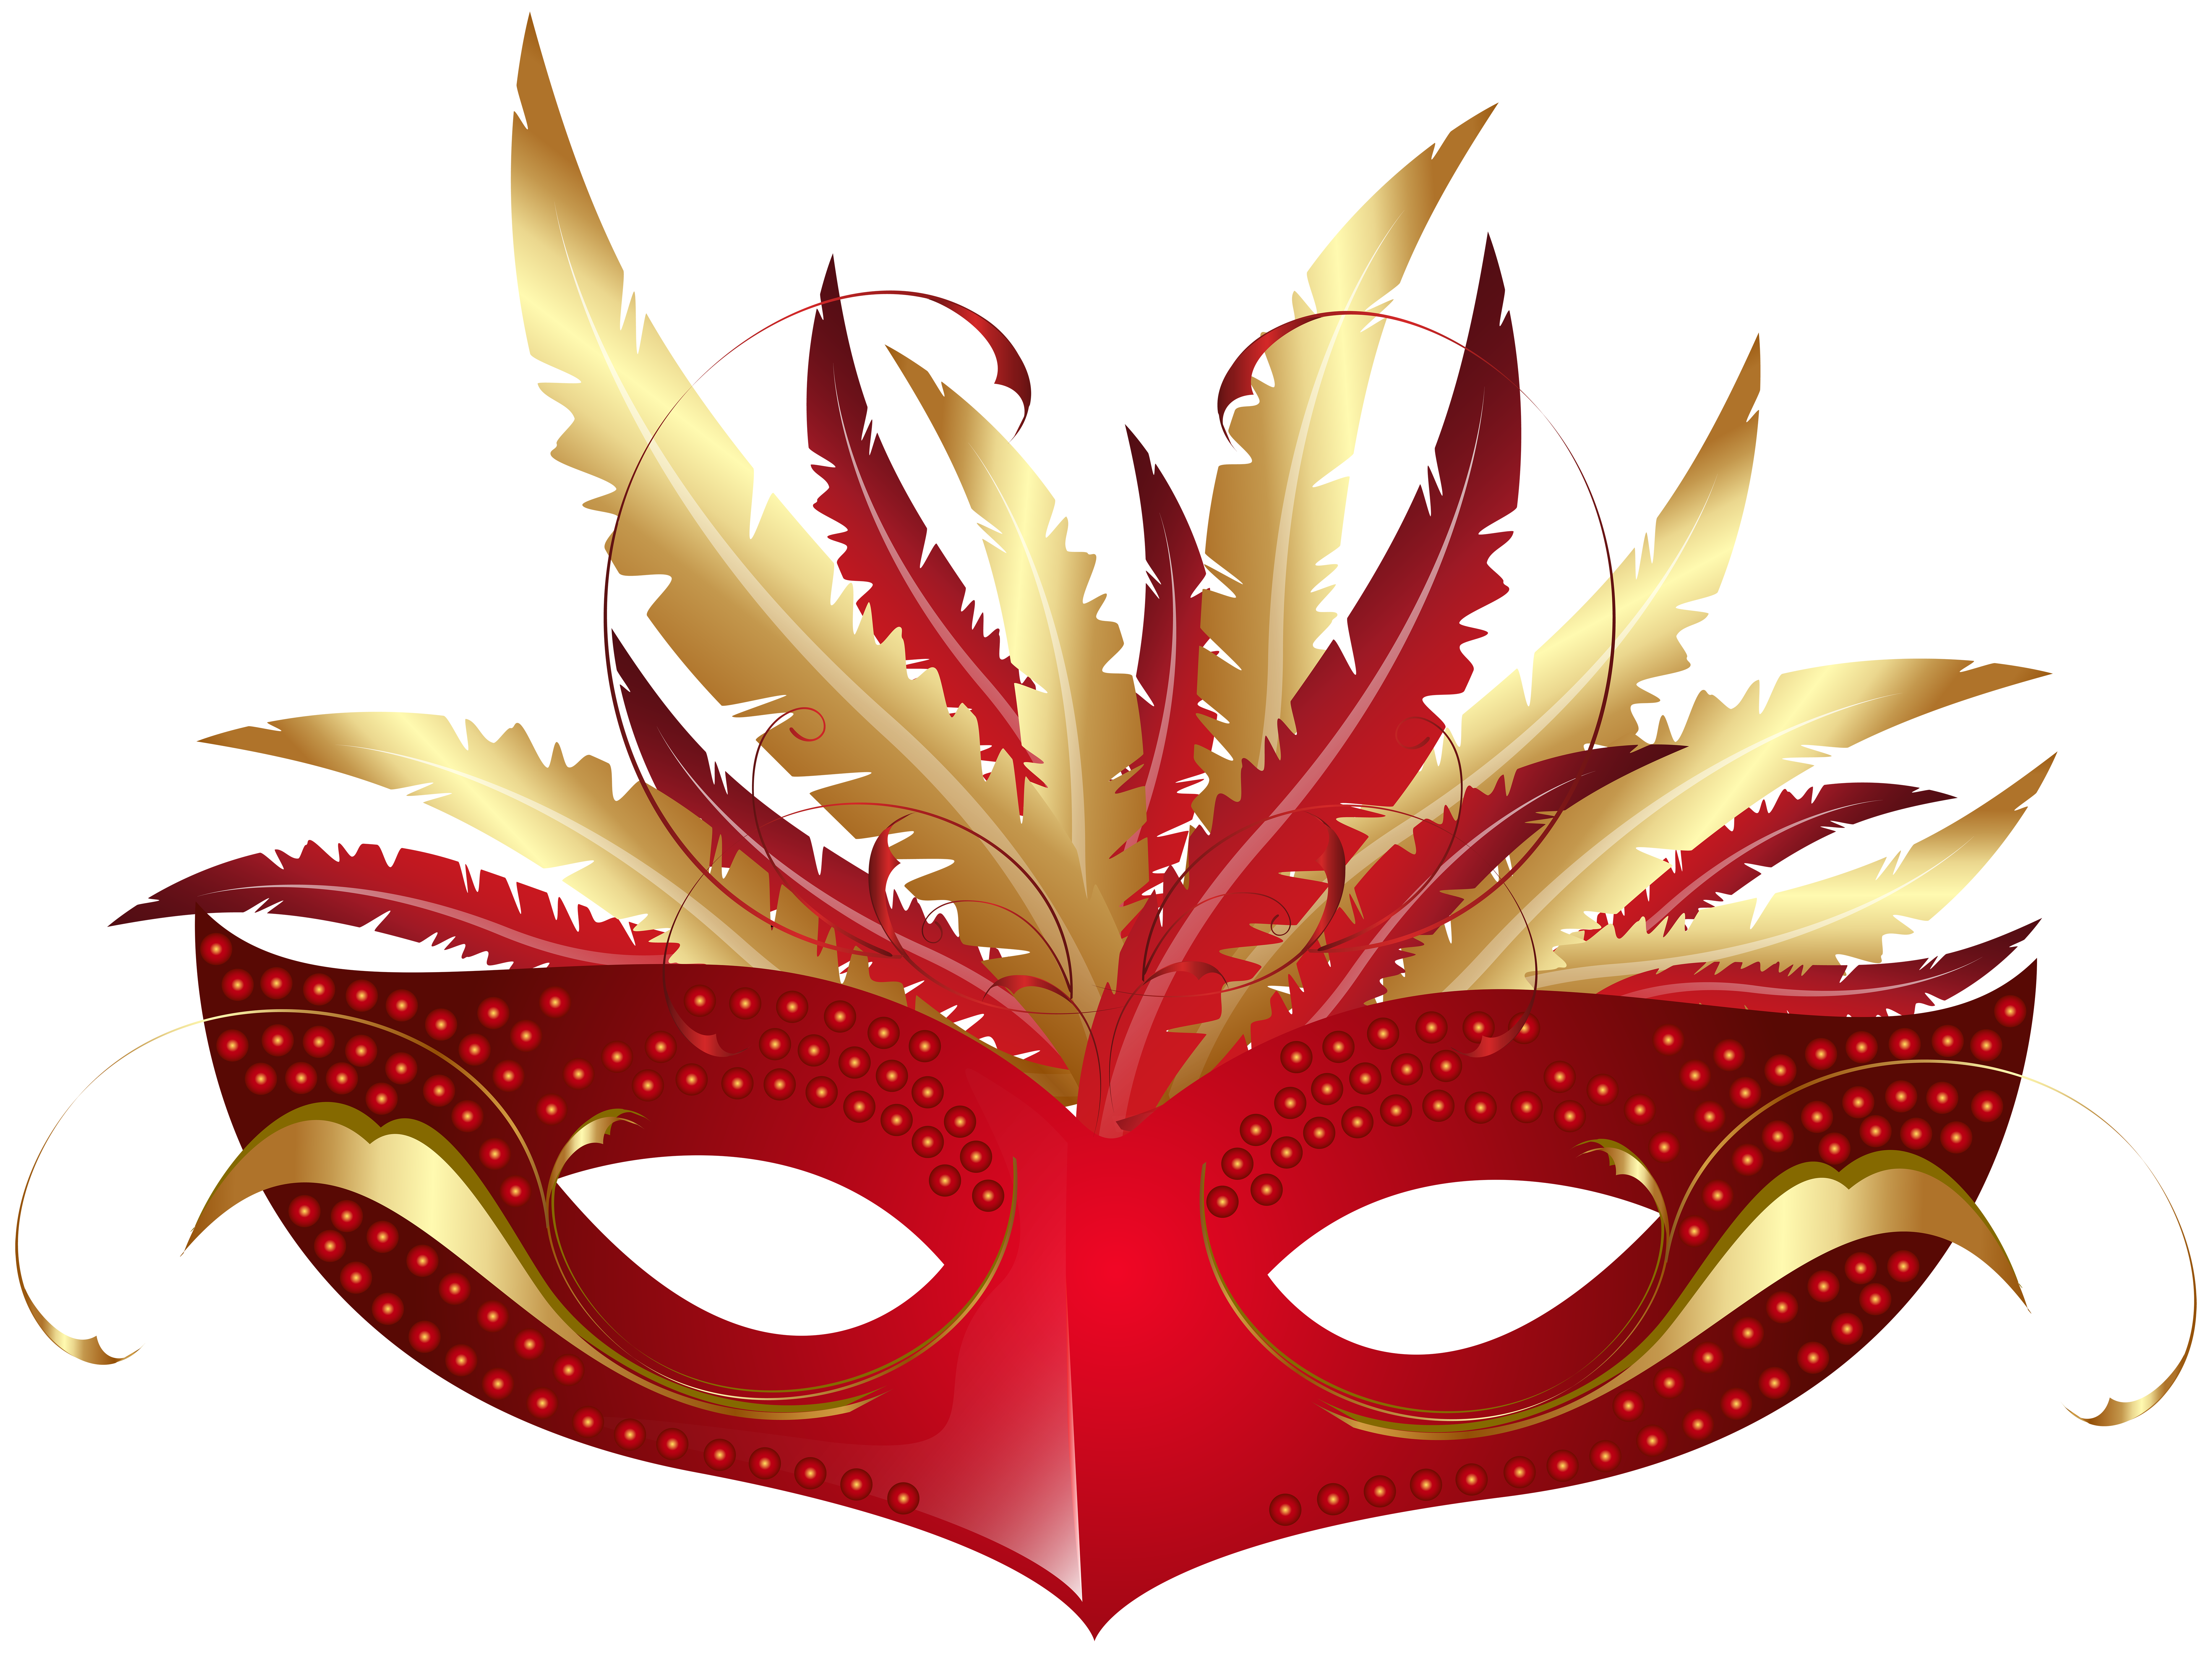 Exchange brazil money clipart image stock Red Carnival Mask PNG Transparent Clip Art Image | Gallery ... image stock